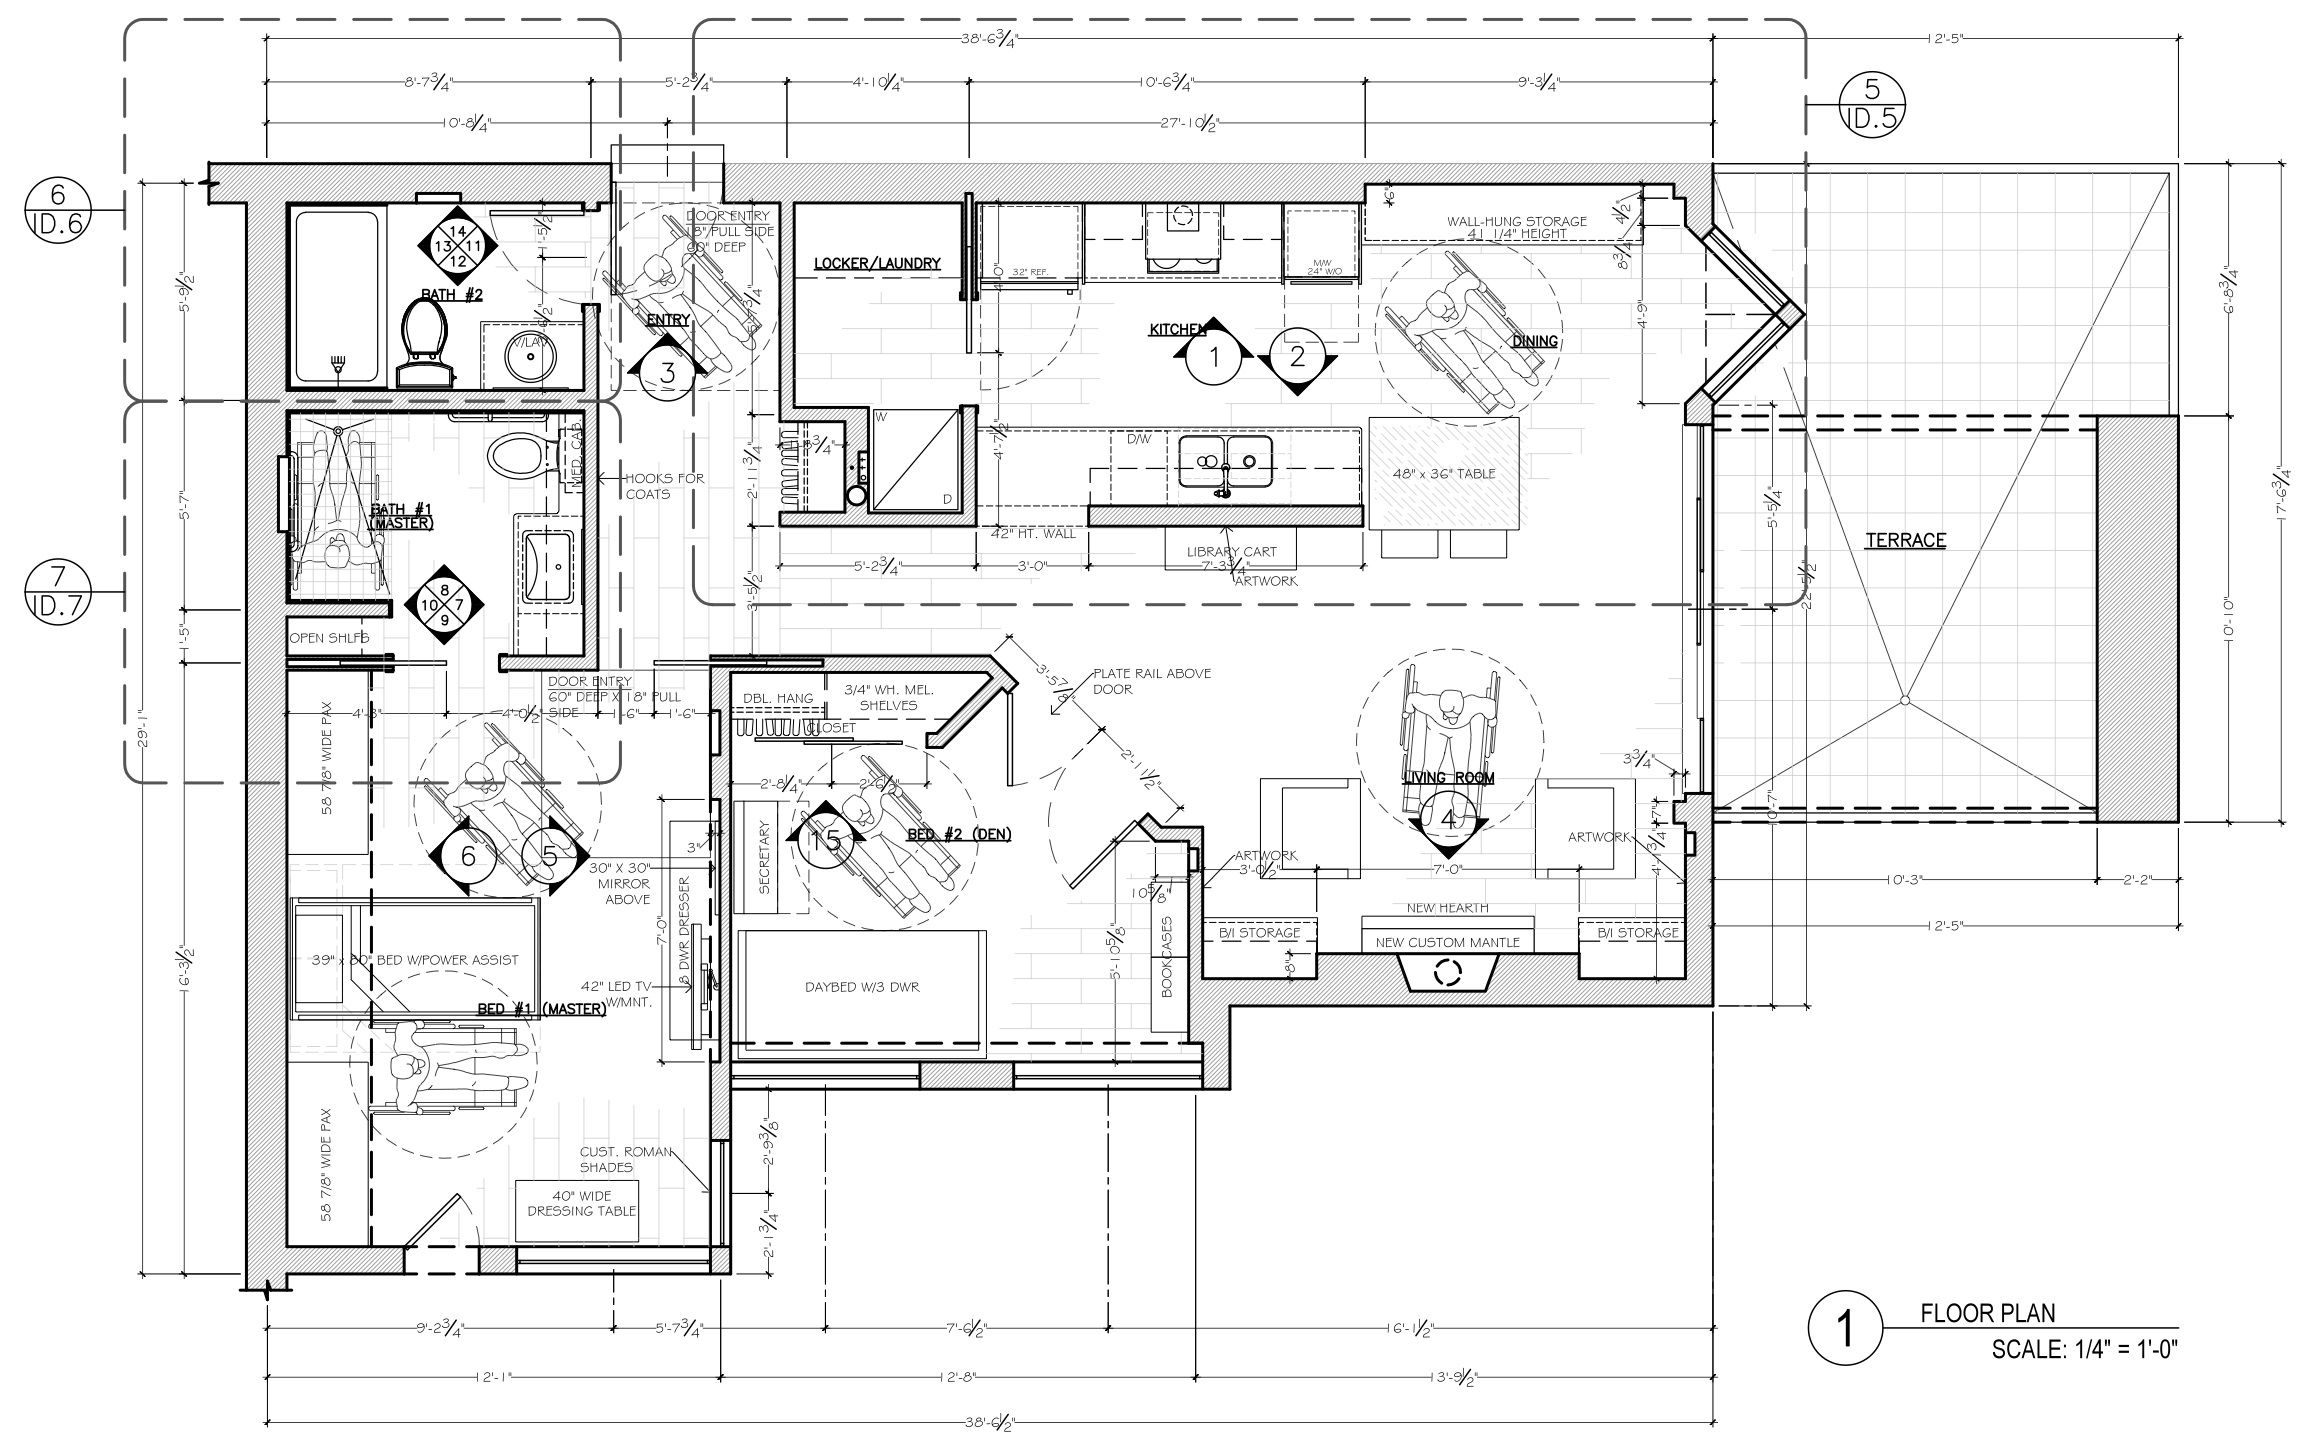 appealing floorplan drawing by smart draw floor plan displaying appealing floorplan drawing by smart draw floor plan displaying master bedroom with master bed completed dining room and balcony floor plans pinterest